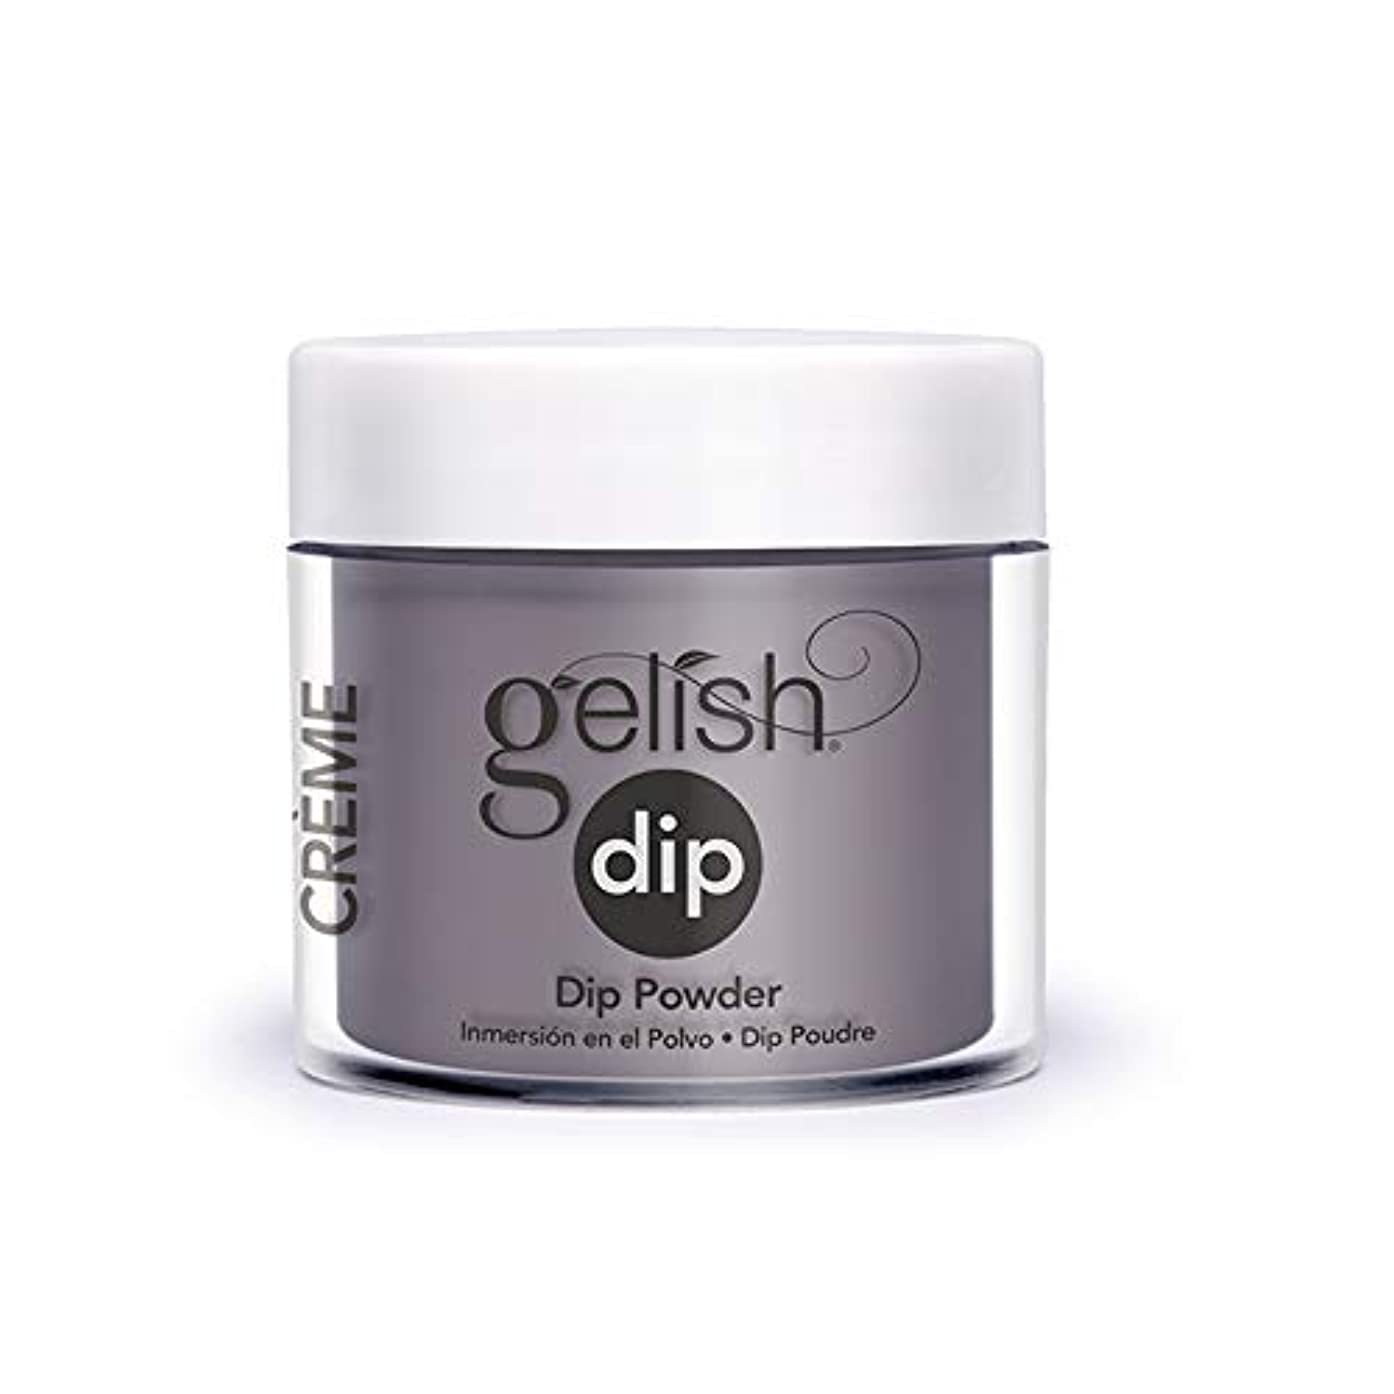 海峡ひもシャイ背の高いHarmony Gelish - Acrylic Dip Powder - Met my Match - 23g / 0.8oz